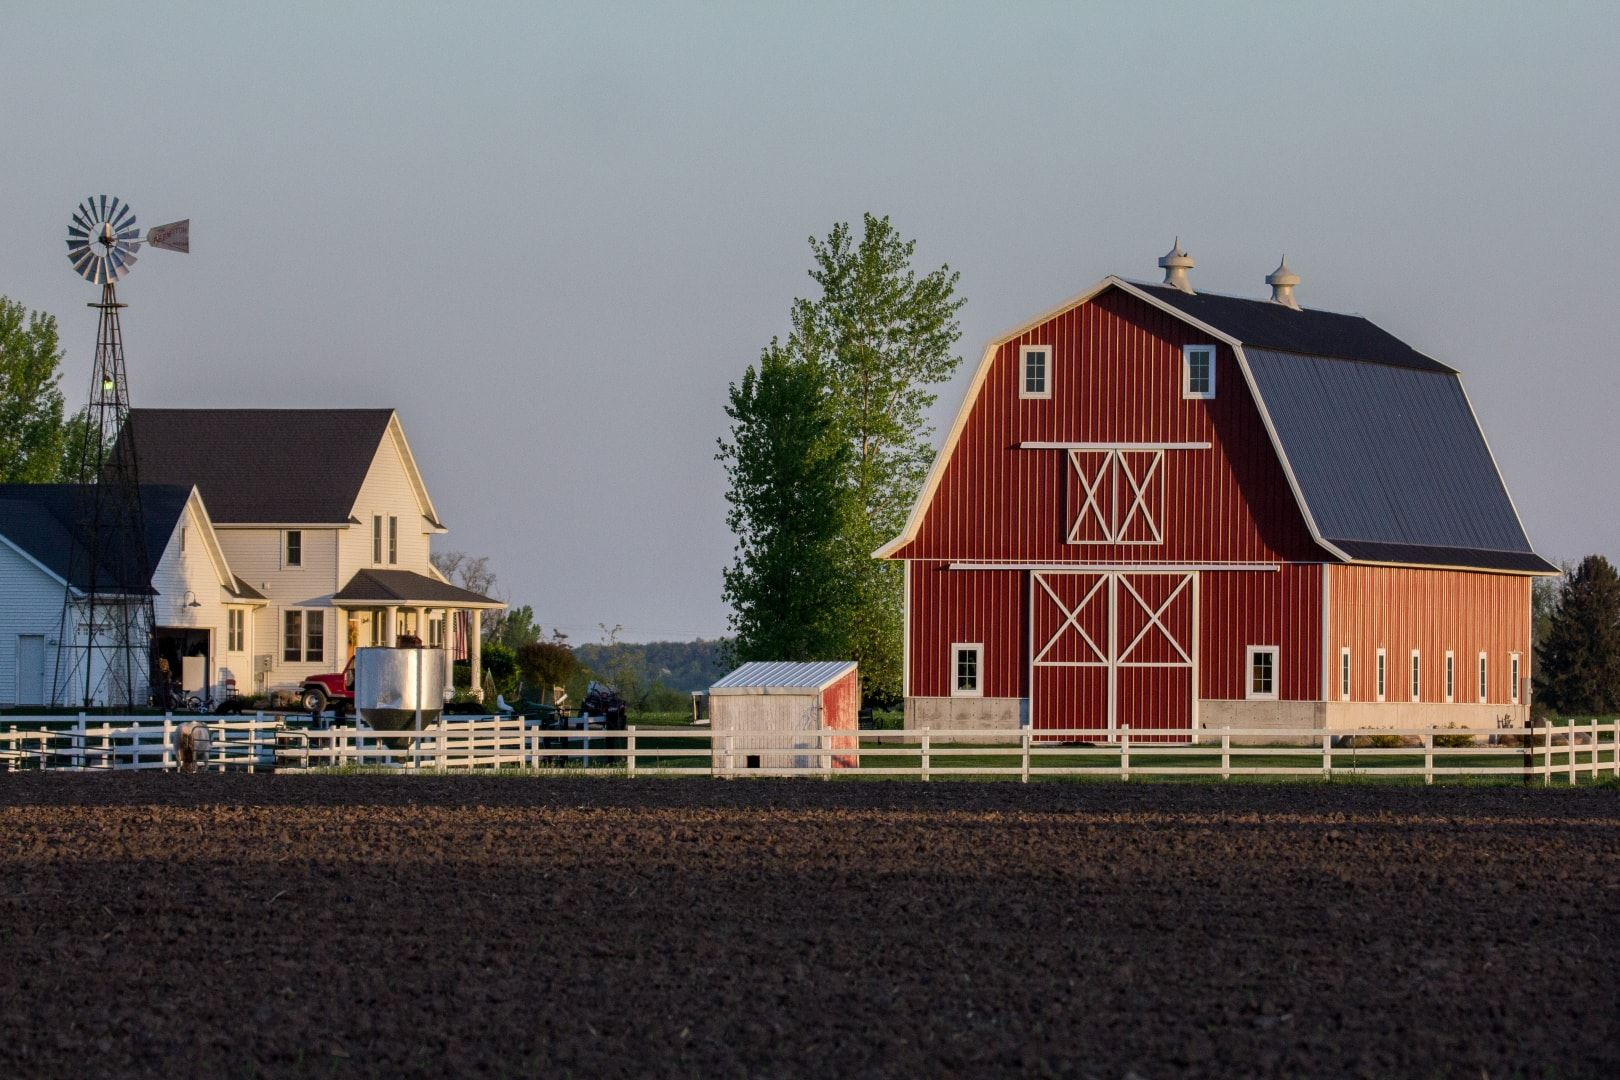 Red Barn, House, and White Fence